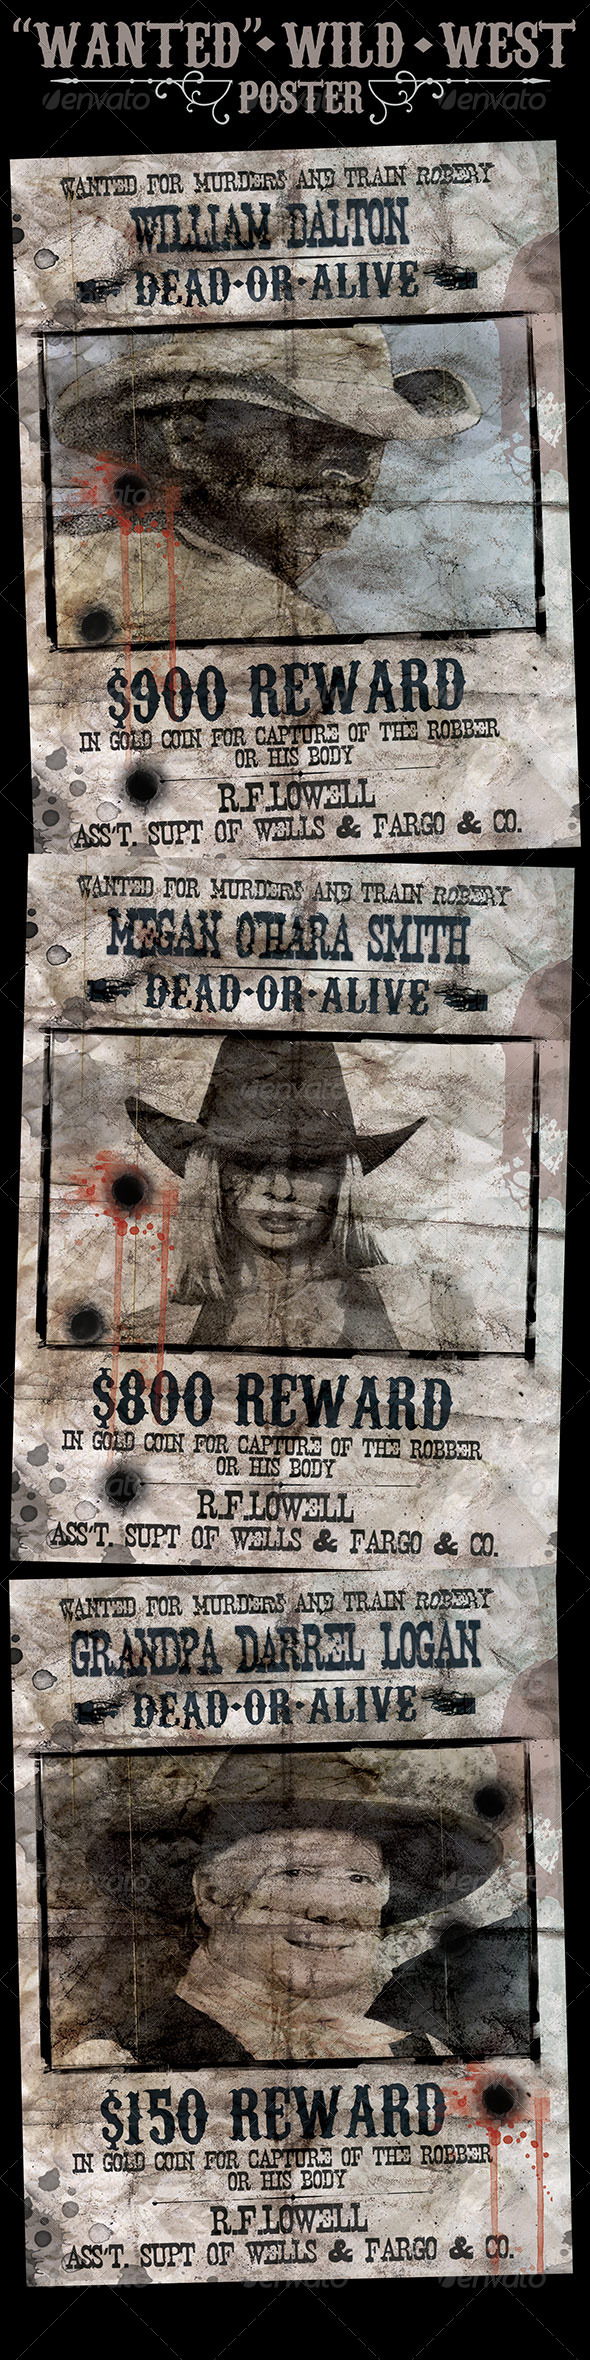 """Wanted"" Poster - Wild West Style - Flyers Print Templates"